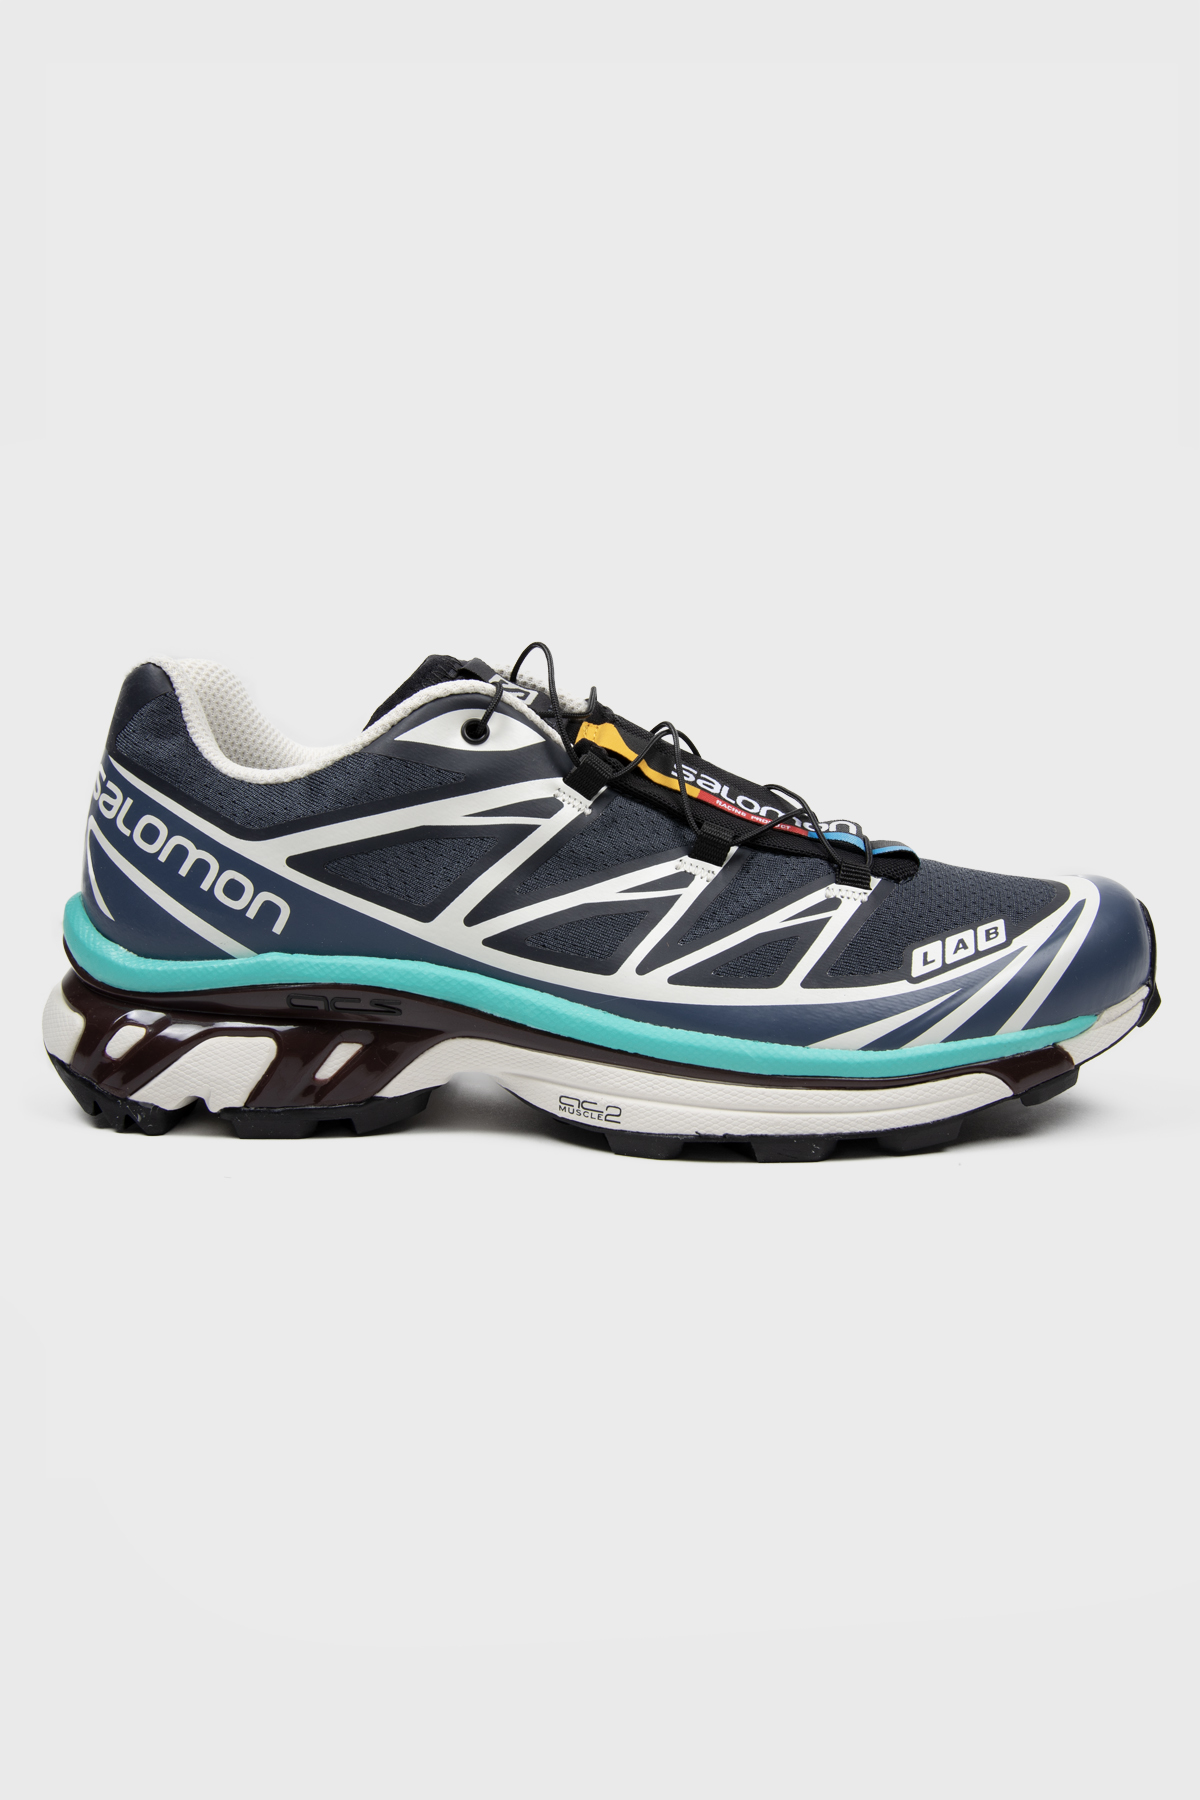 Salomon - S/LAB XT-6 ADV - Ebony vanilla ice Atlantis